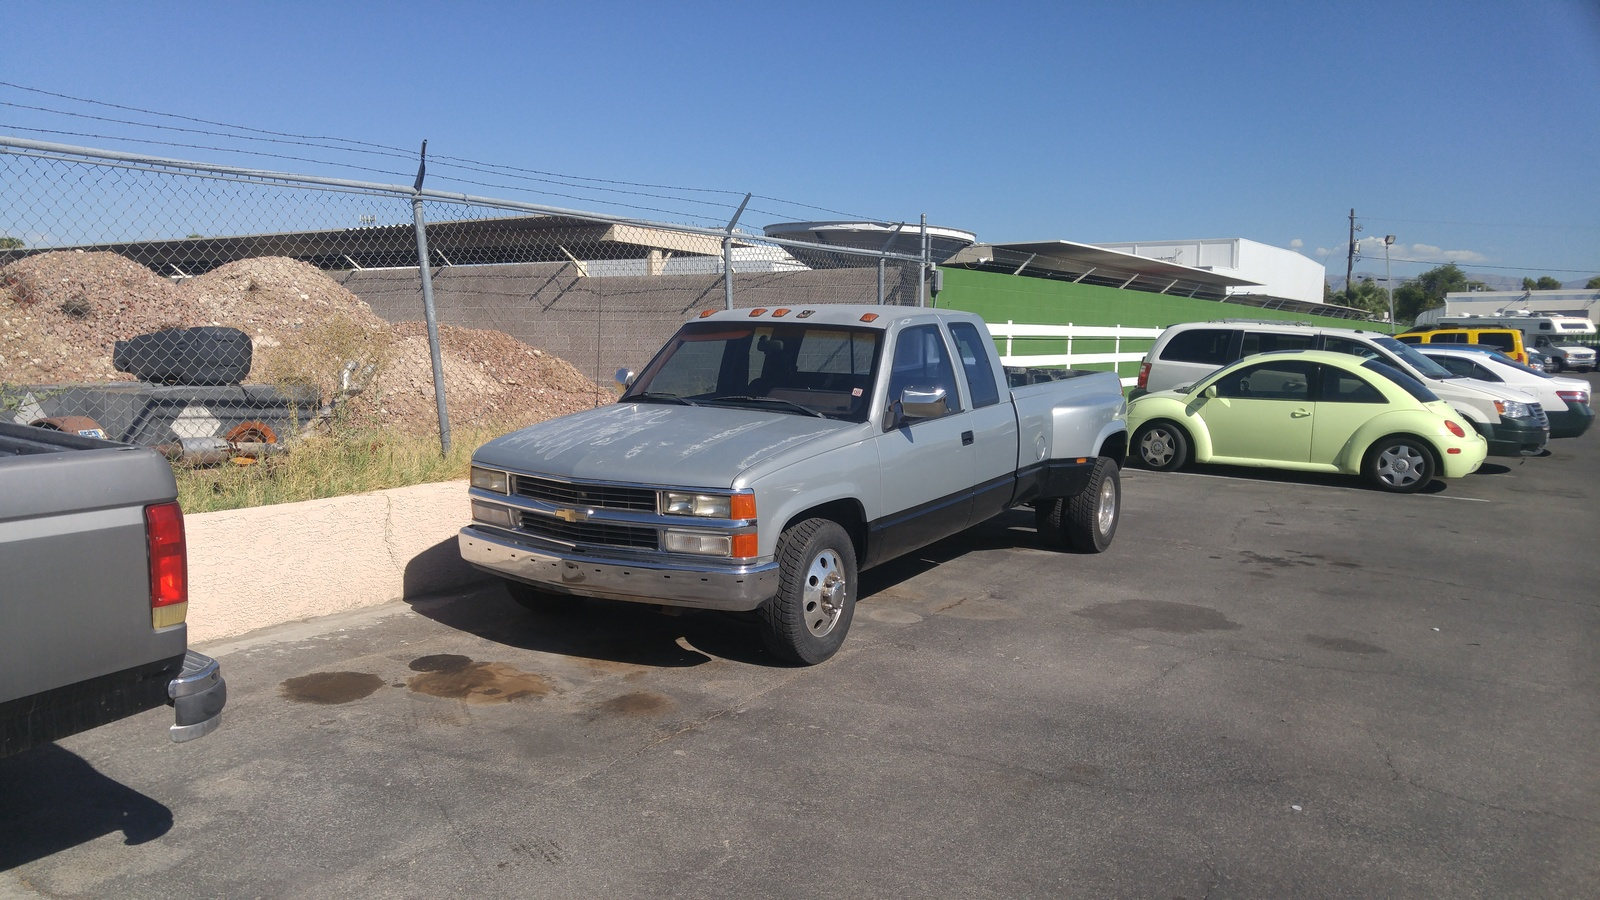 All Chevy 1991 chevy 3500 : 1991 Chevrolet C/K 3500 - Overview - CarGurus